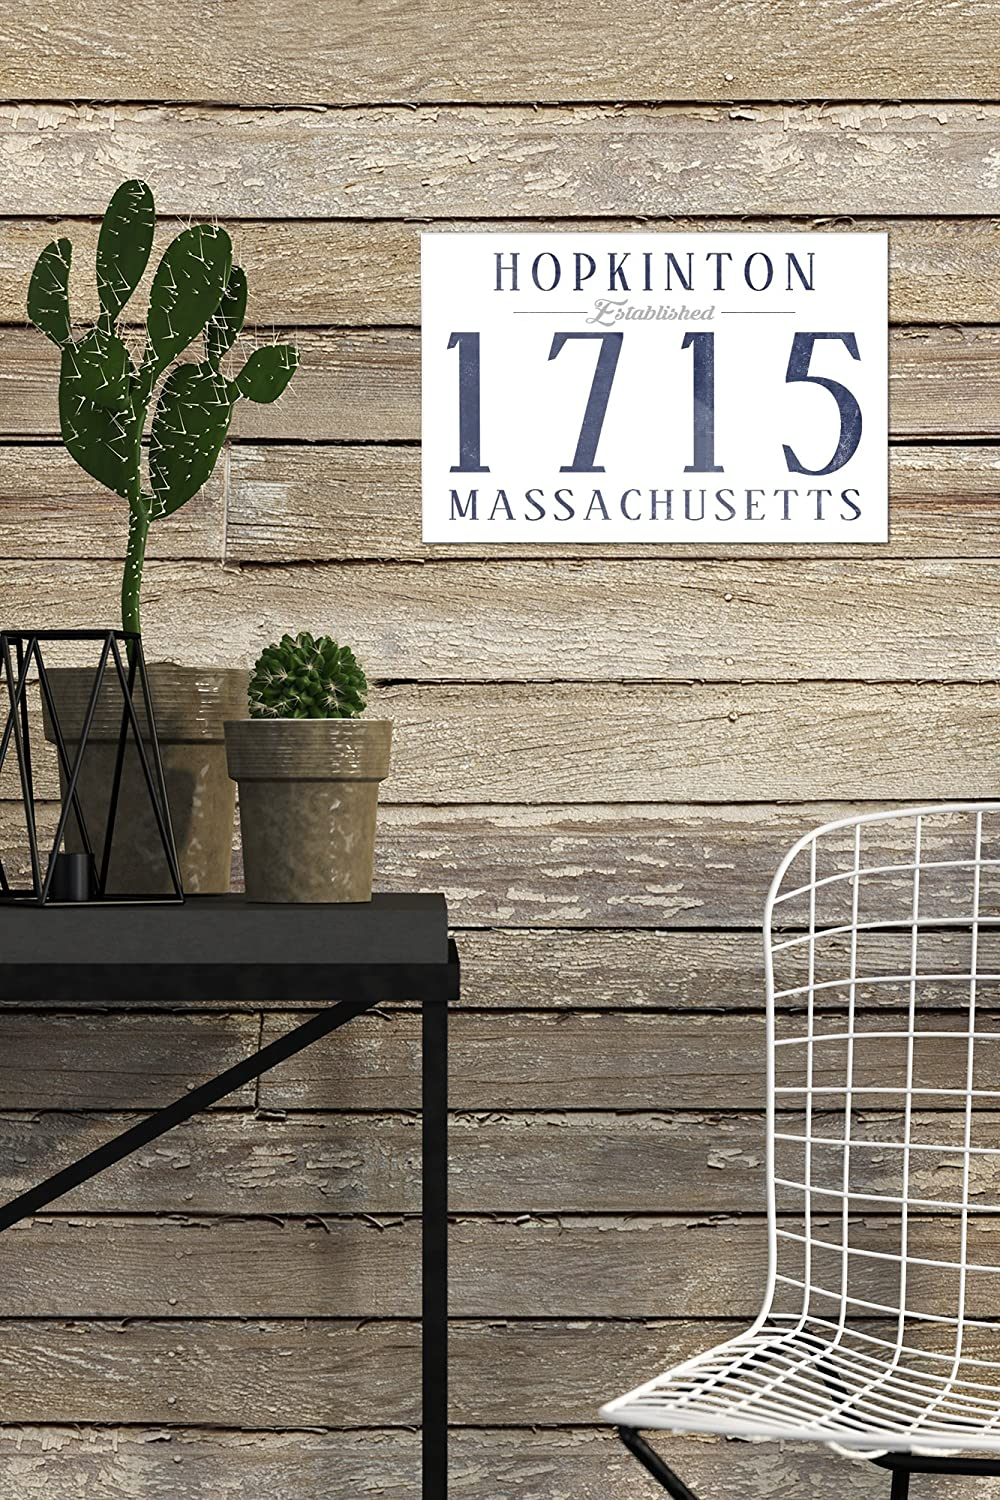 36x54 Giclee Gallery Print, Wall Decor Travel Poster Hopkinton Established Date Massachusetts